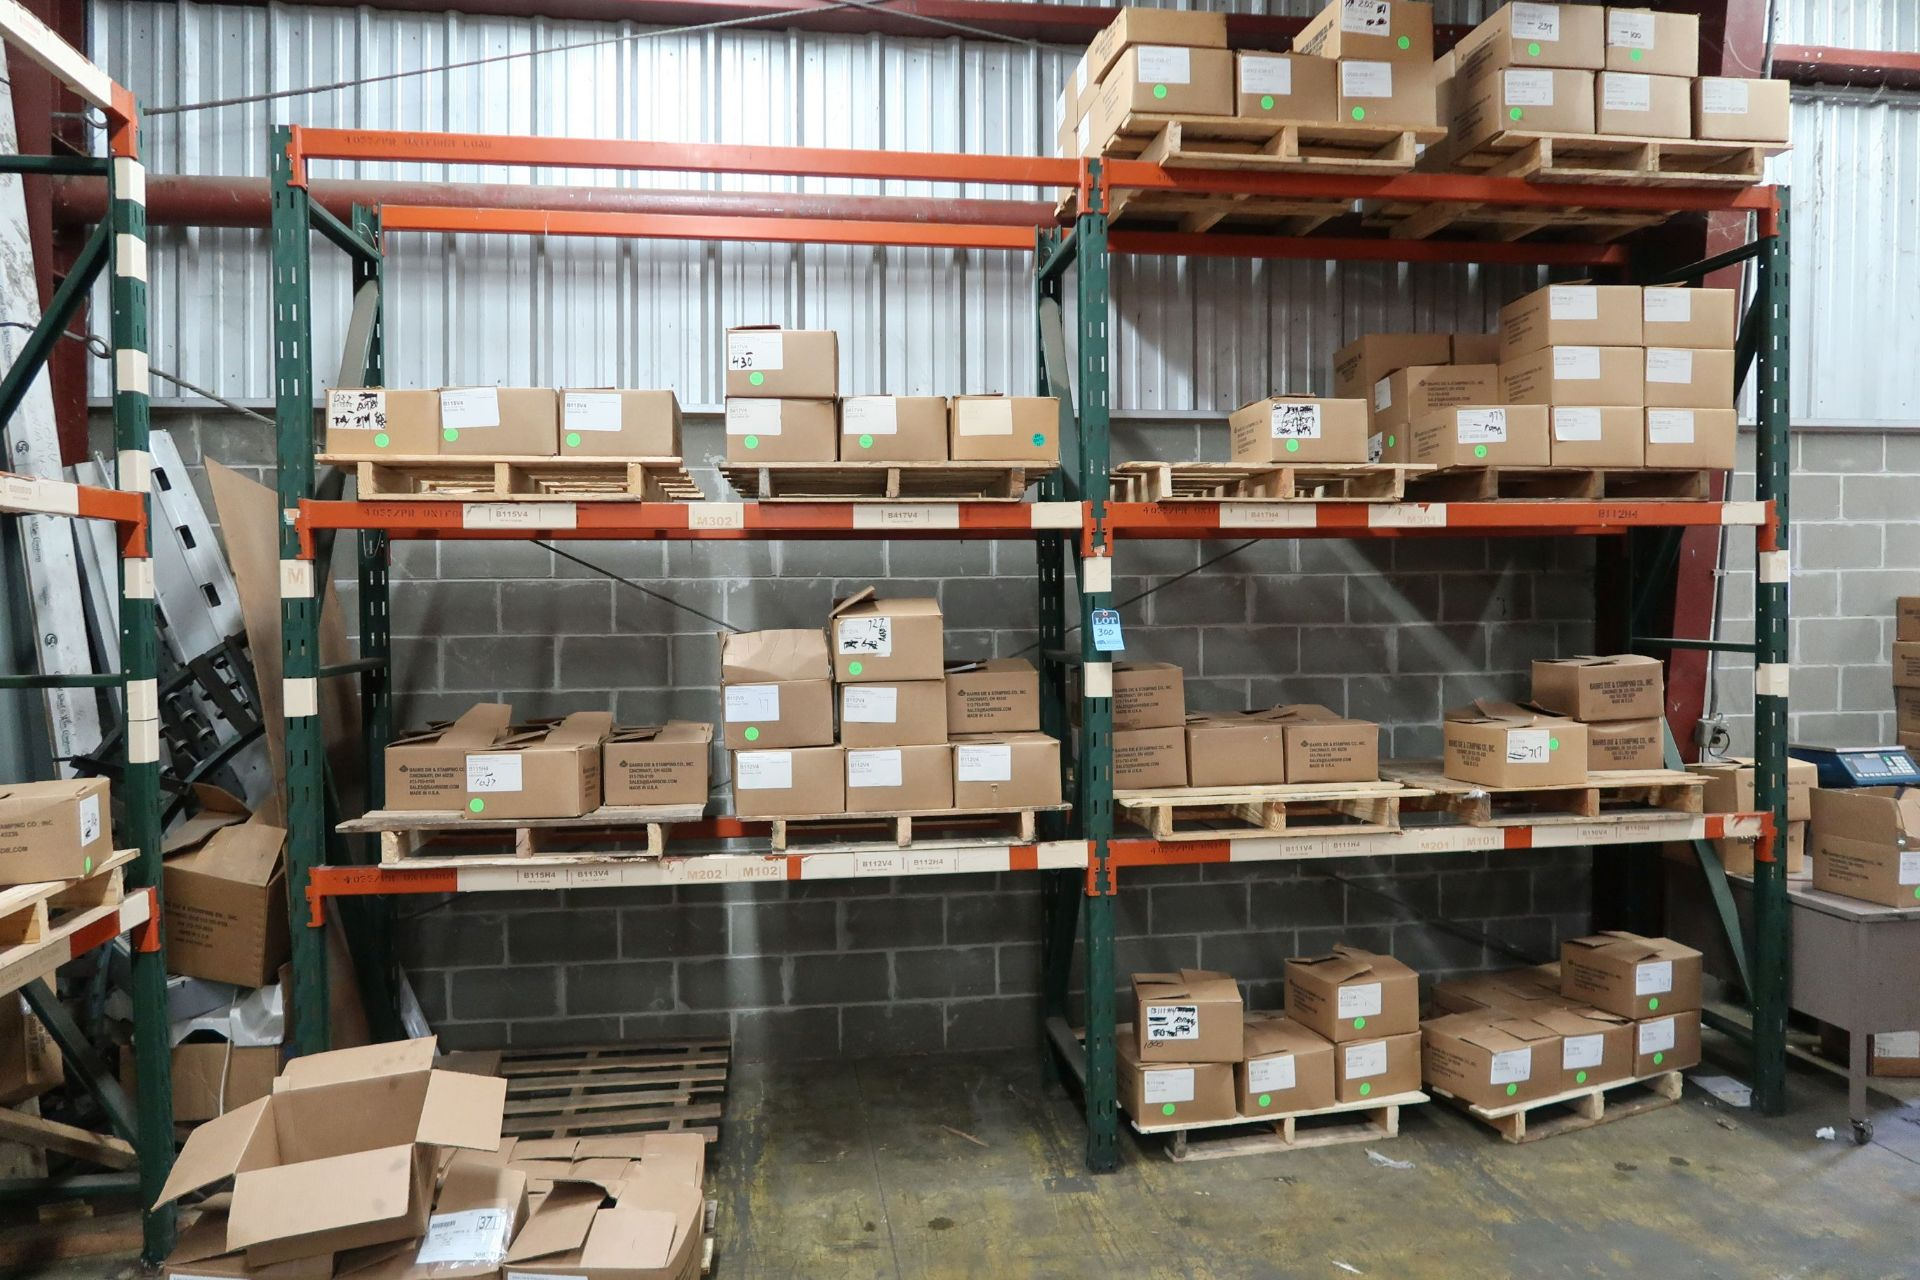 "SECTIONS 86"" X 30"" X 120"" ADJUSTABLE BEAM PALLET RACK **RACKING ONLY - DELAYED REMOVAL - PICKUP 10/"